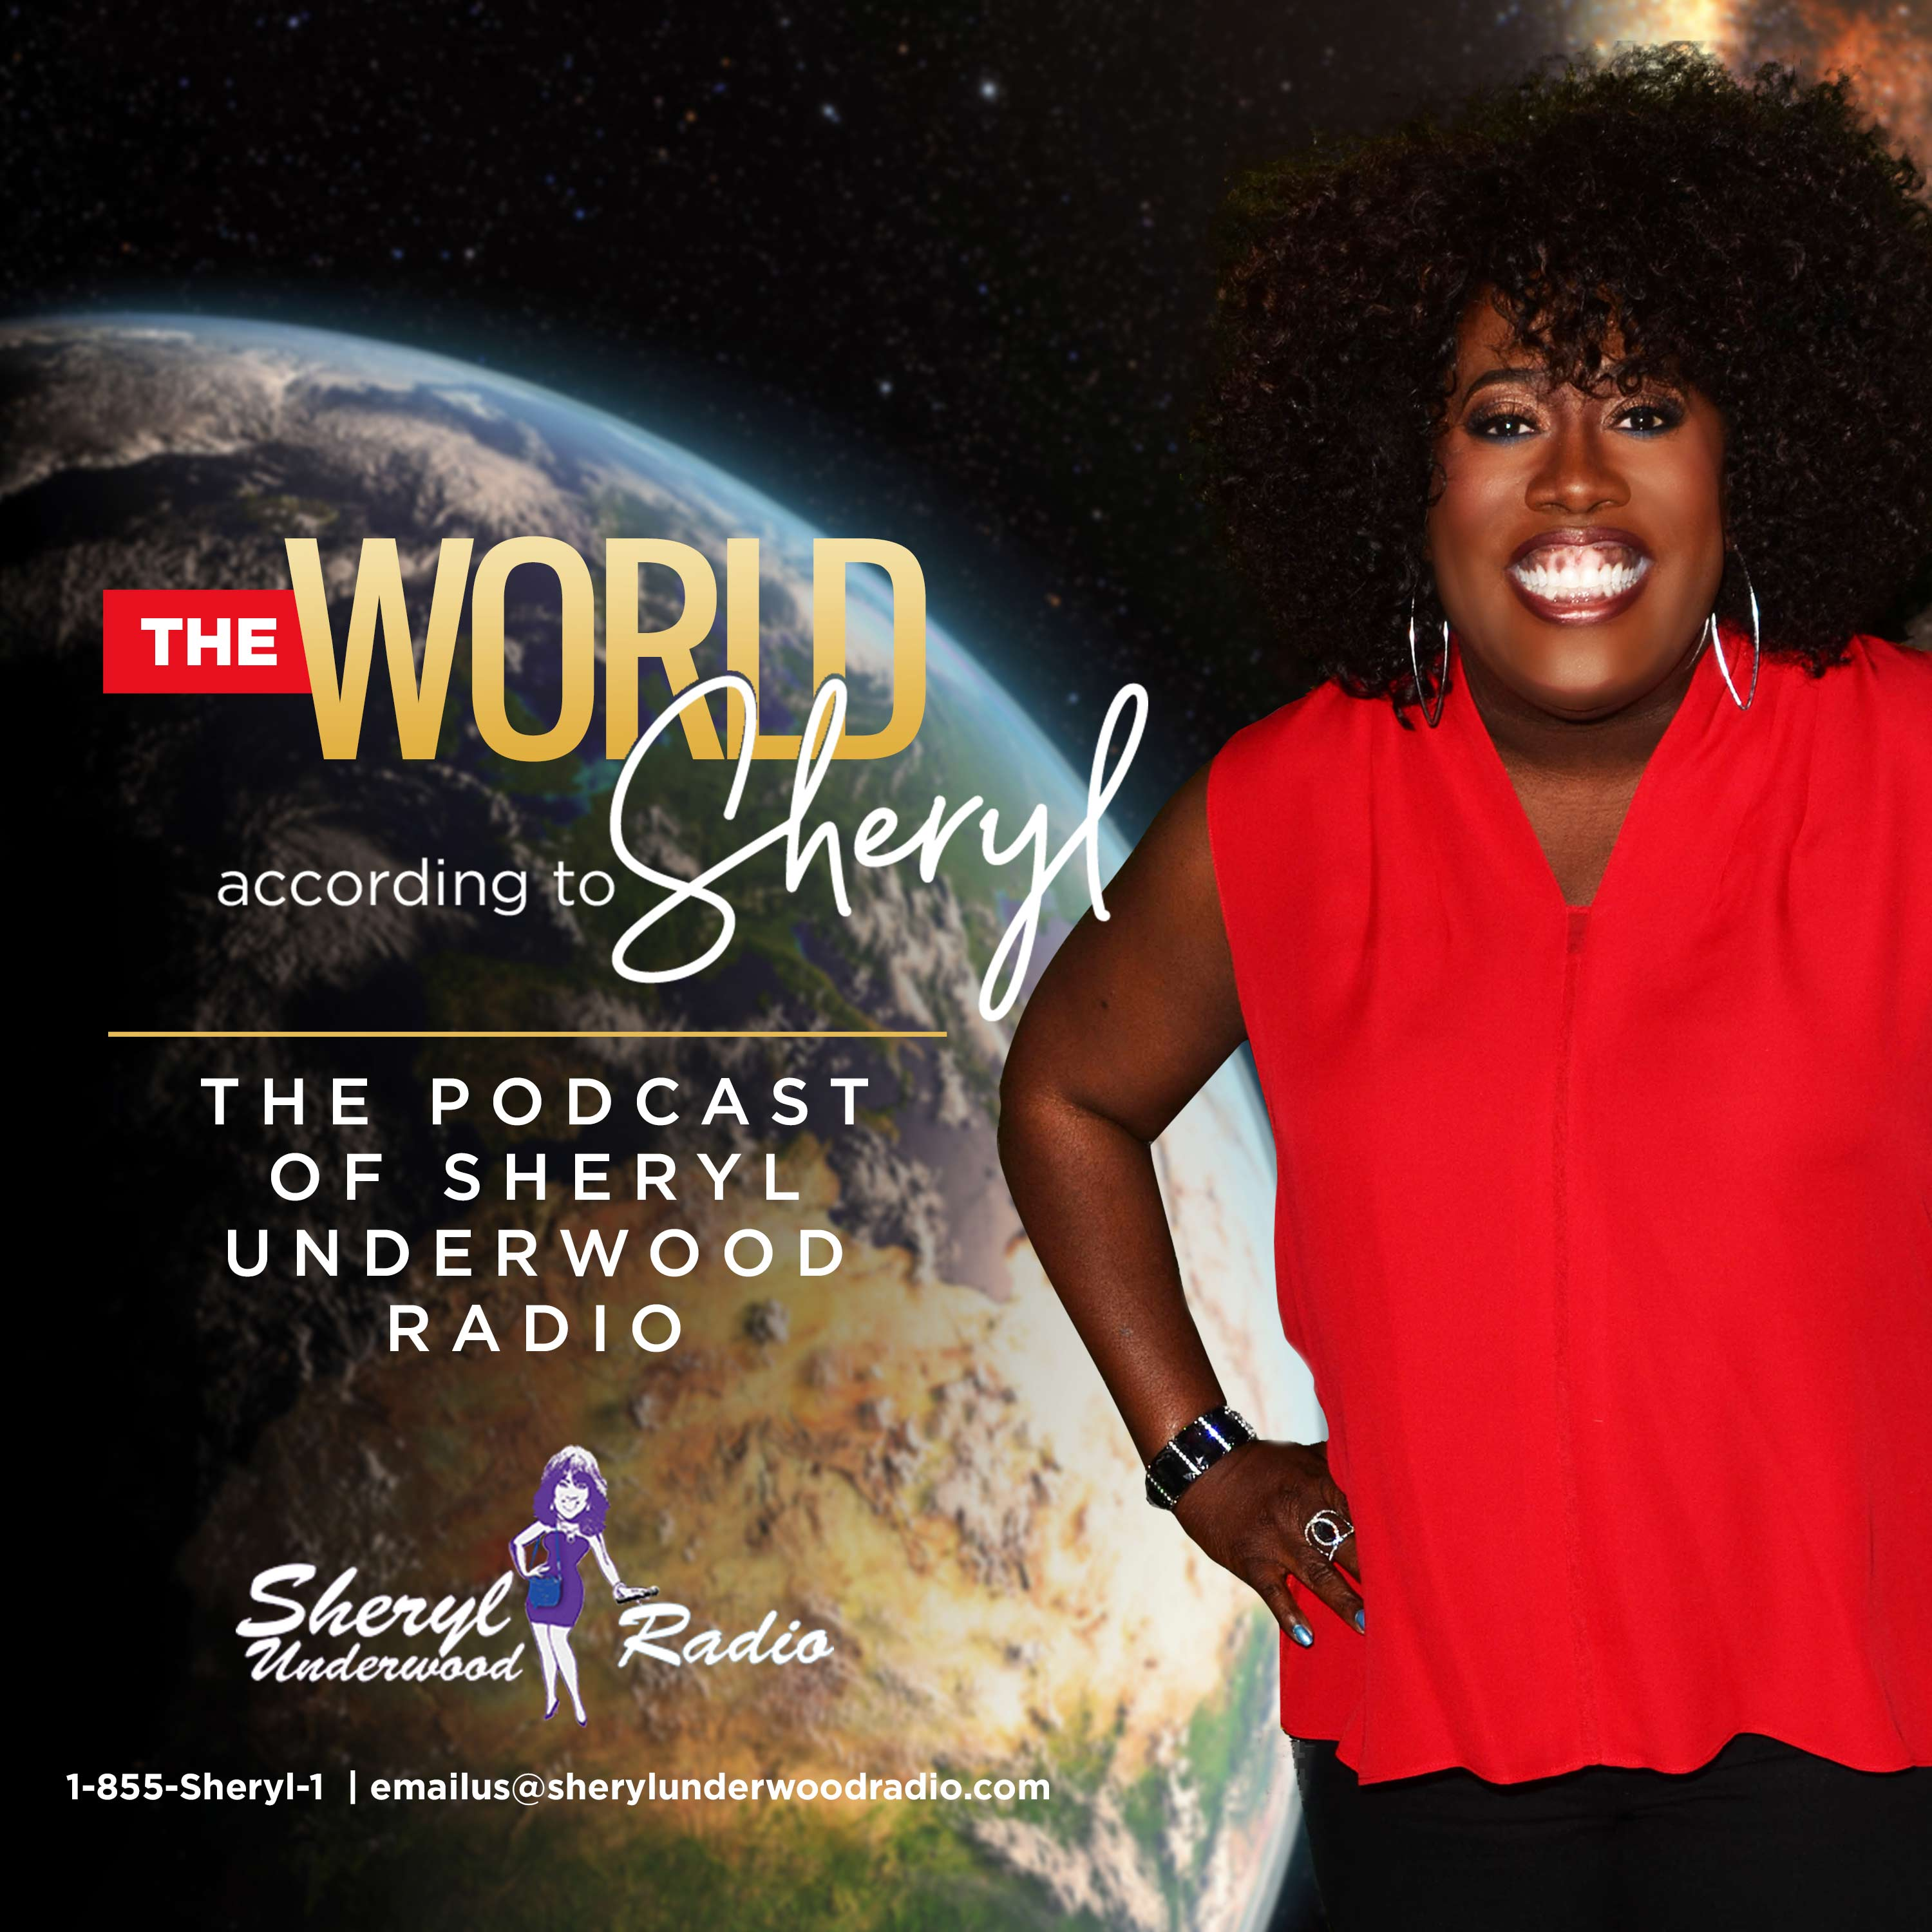 Artwork for The world according to Sheryl